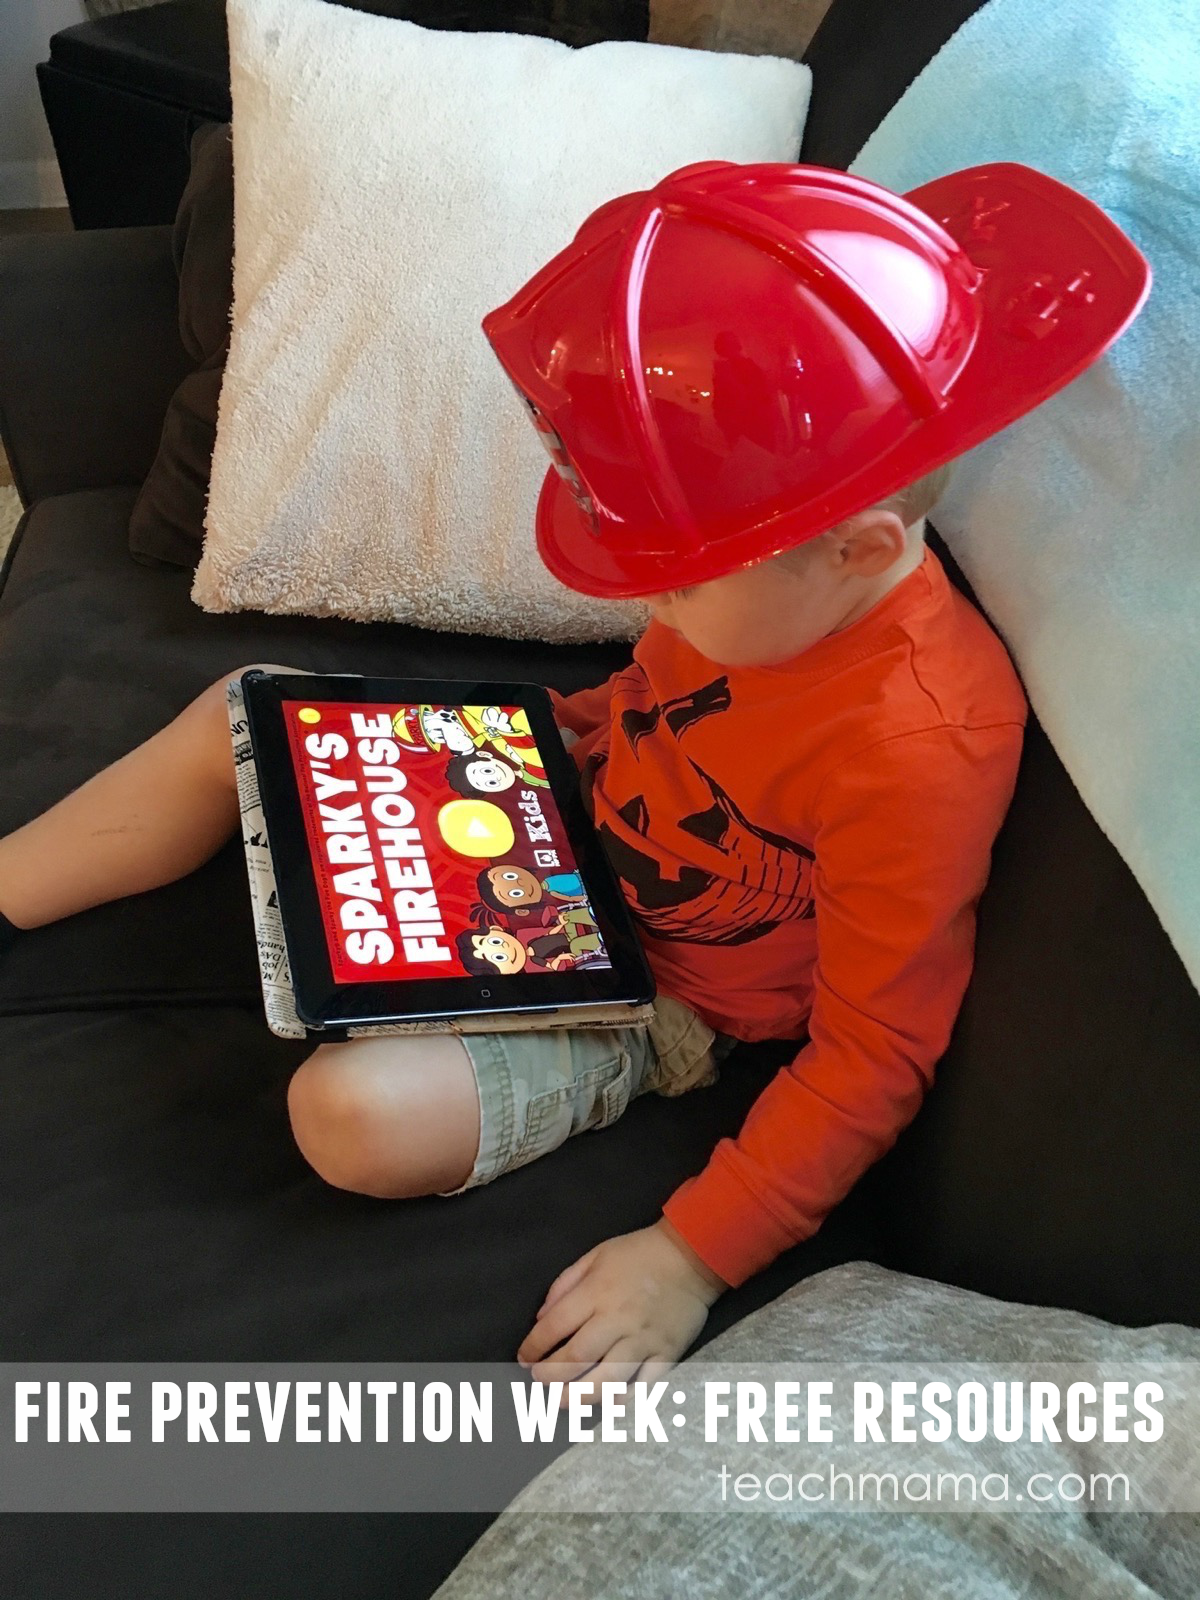 national fire prevention week: sparky's firehouse game for kids